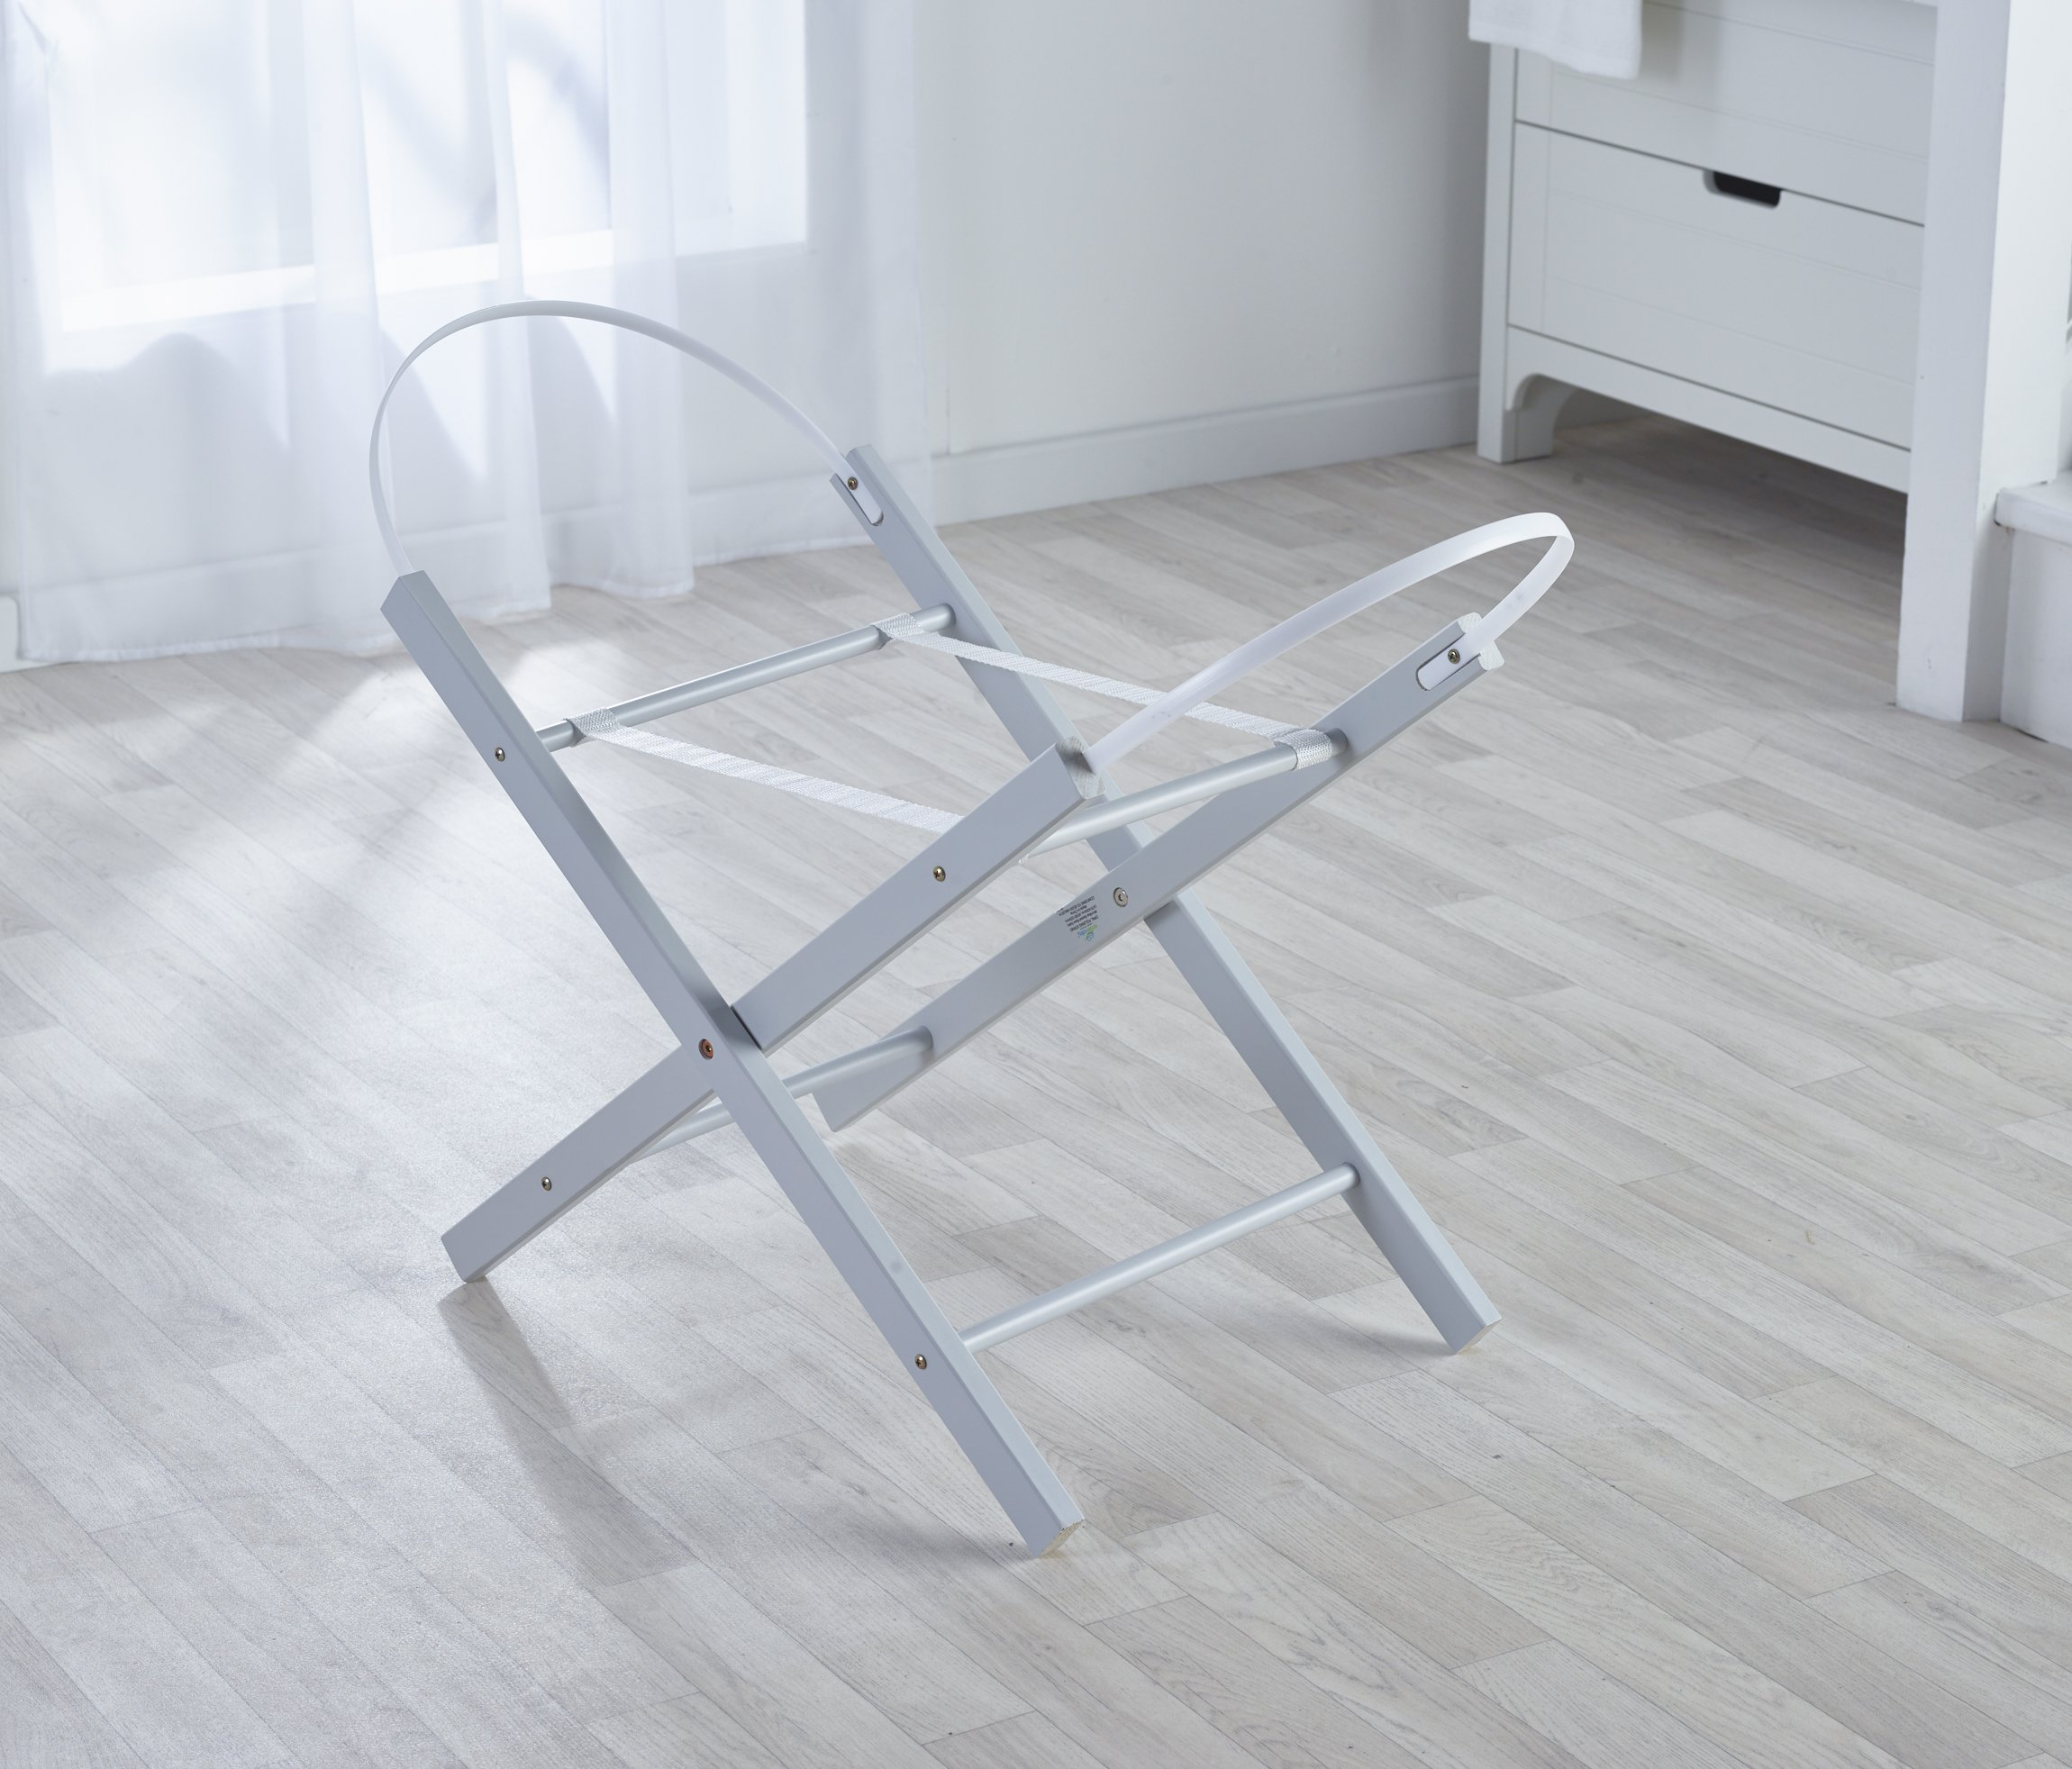 Kinder Valley Opal Folding Stand, Dove Grey Kinder Valley Easy folding for convenience This stand would look perfect with any kinder valley mosses basket or mosses basket pod Self assembly required. easy to set up, instructions and tool supplied 4